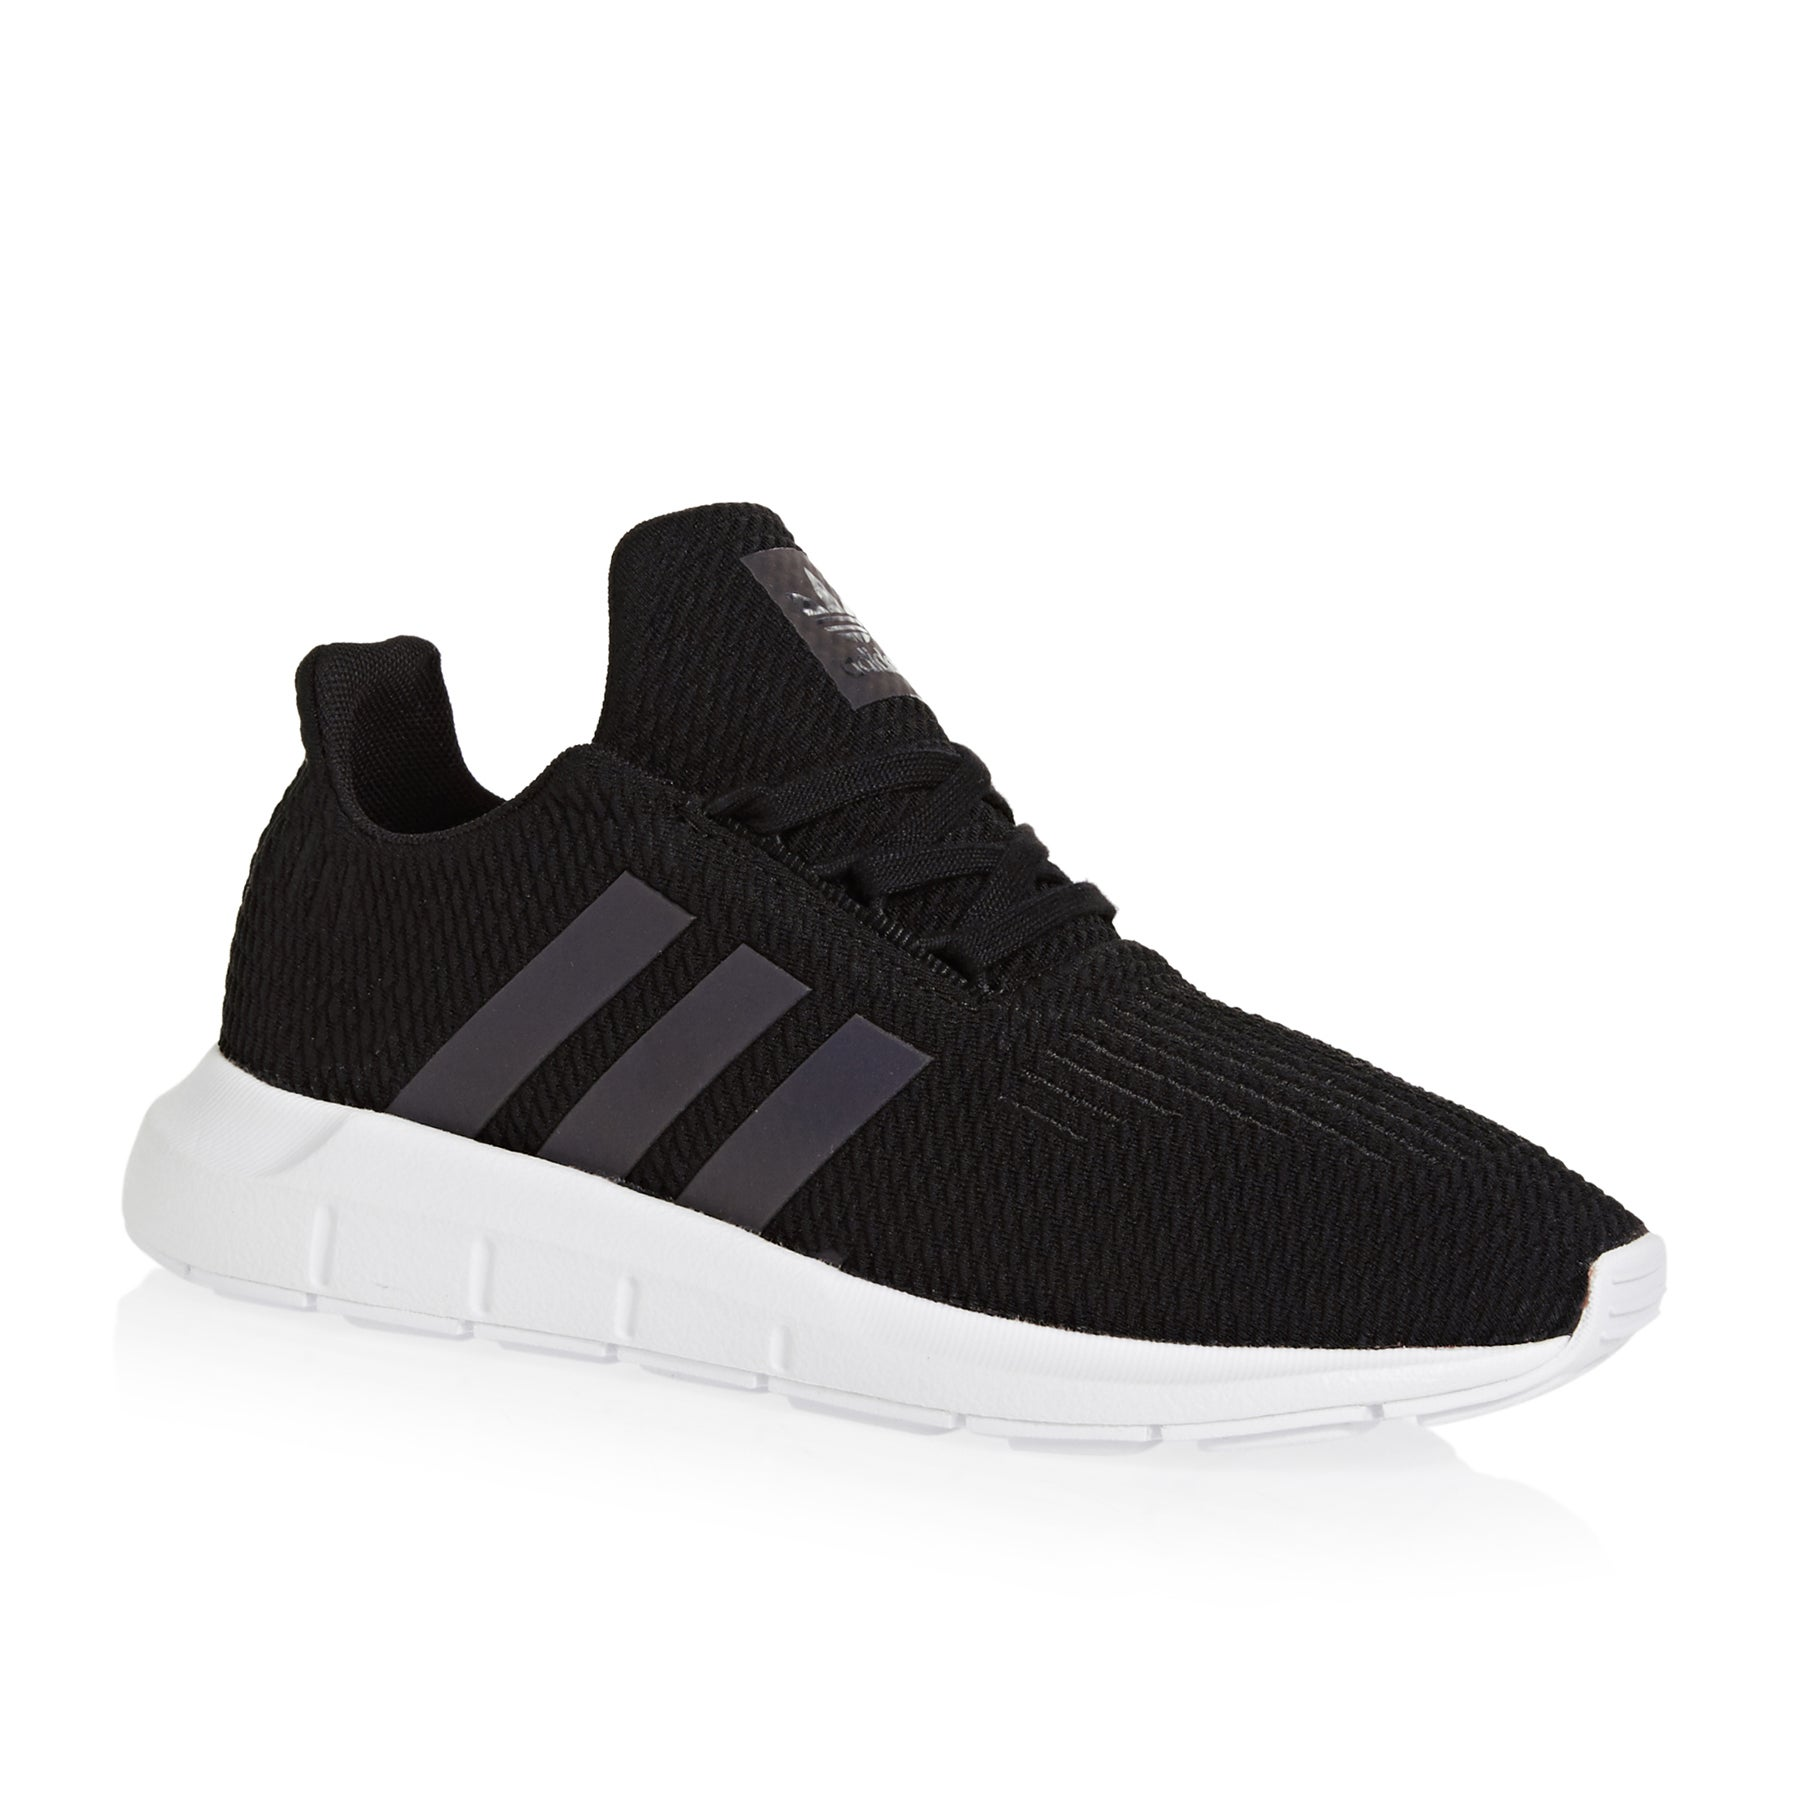 Adidas Originals Swift Run C Kids Shoes - Black White